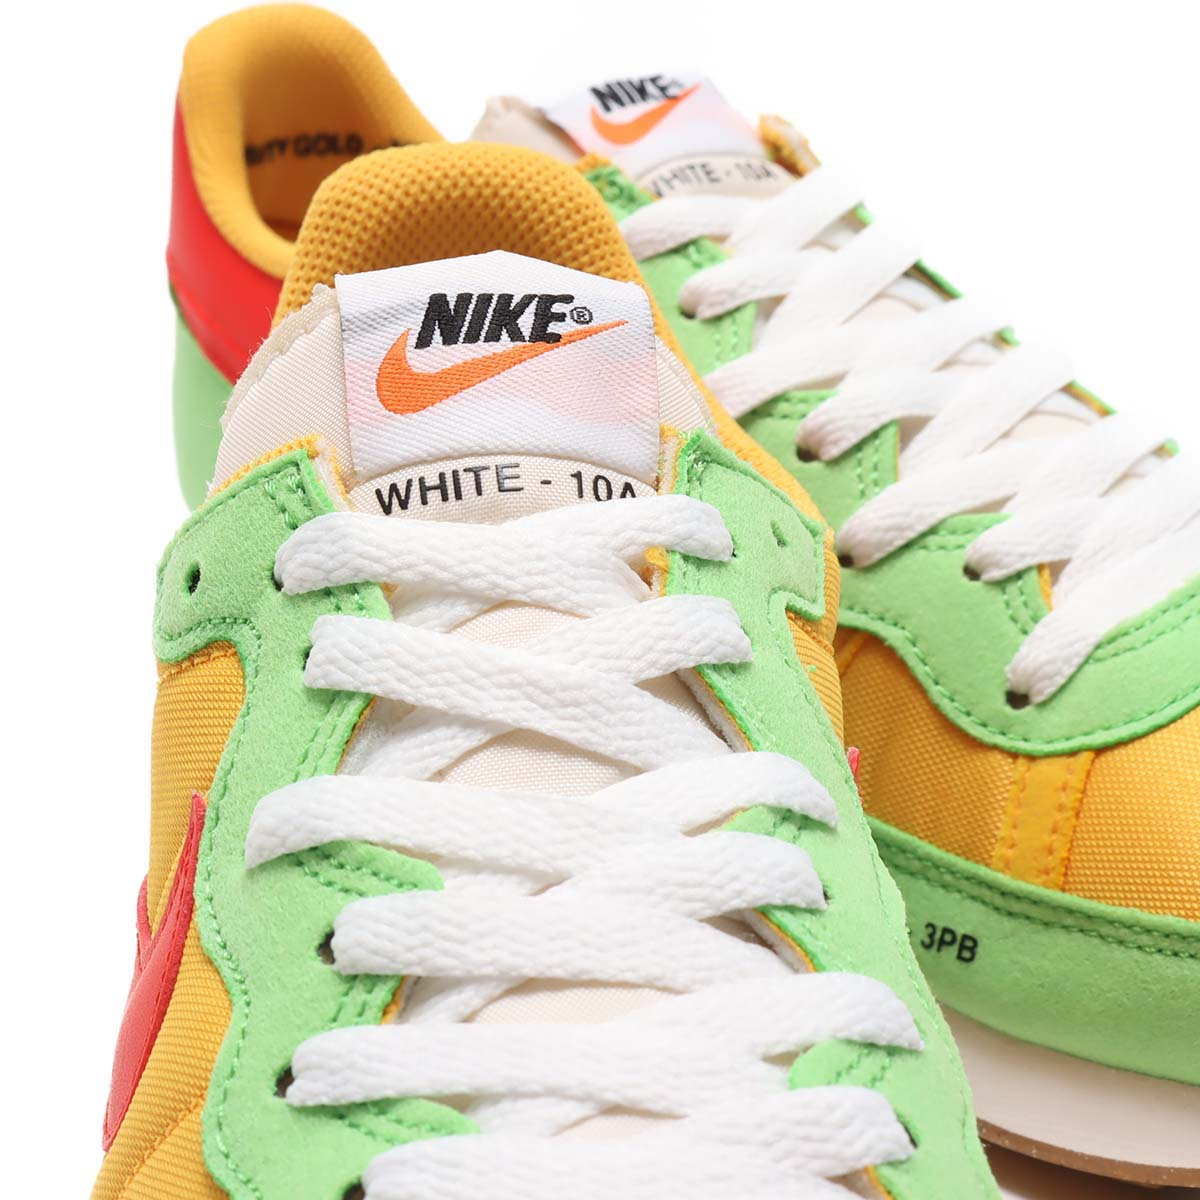 "NIKE CHALLENGER OG "" SPORTS HERITAGE PACK"" UNIVERSITY GOLD / HABANERO RED CZ9072-763 ナイキ チャレンジャー OG ゴールド/レッド"